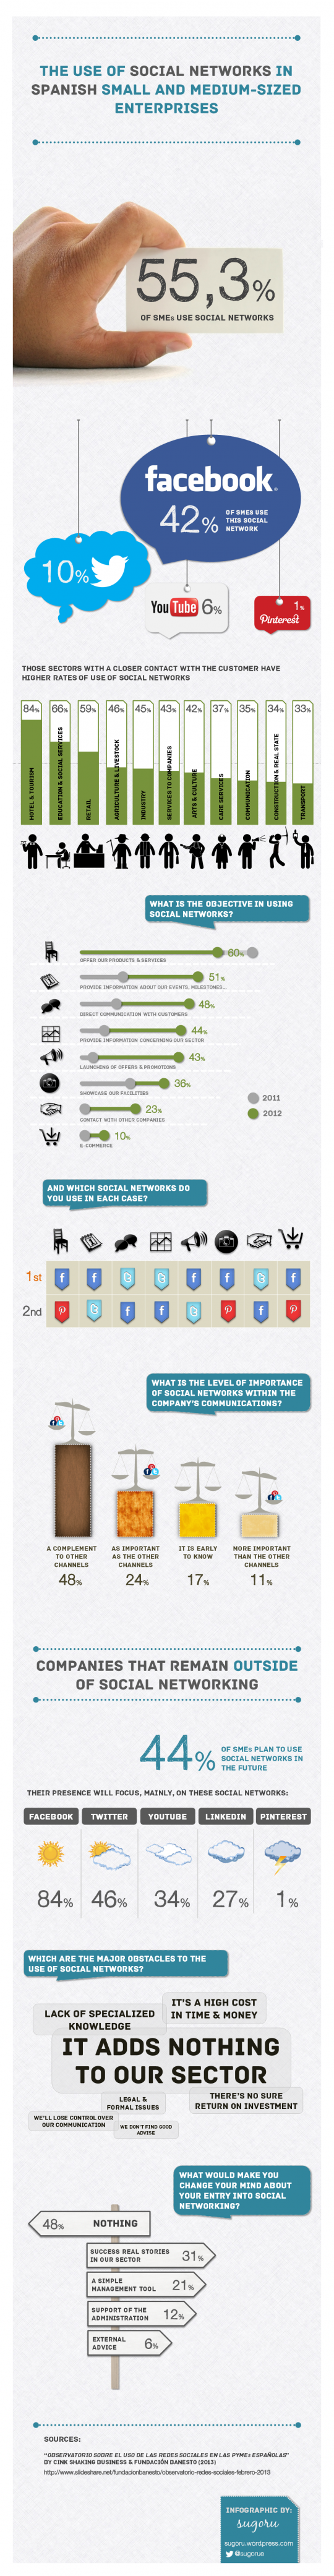 The use of social networks in Spanish companies